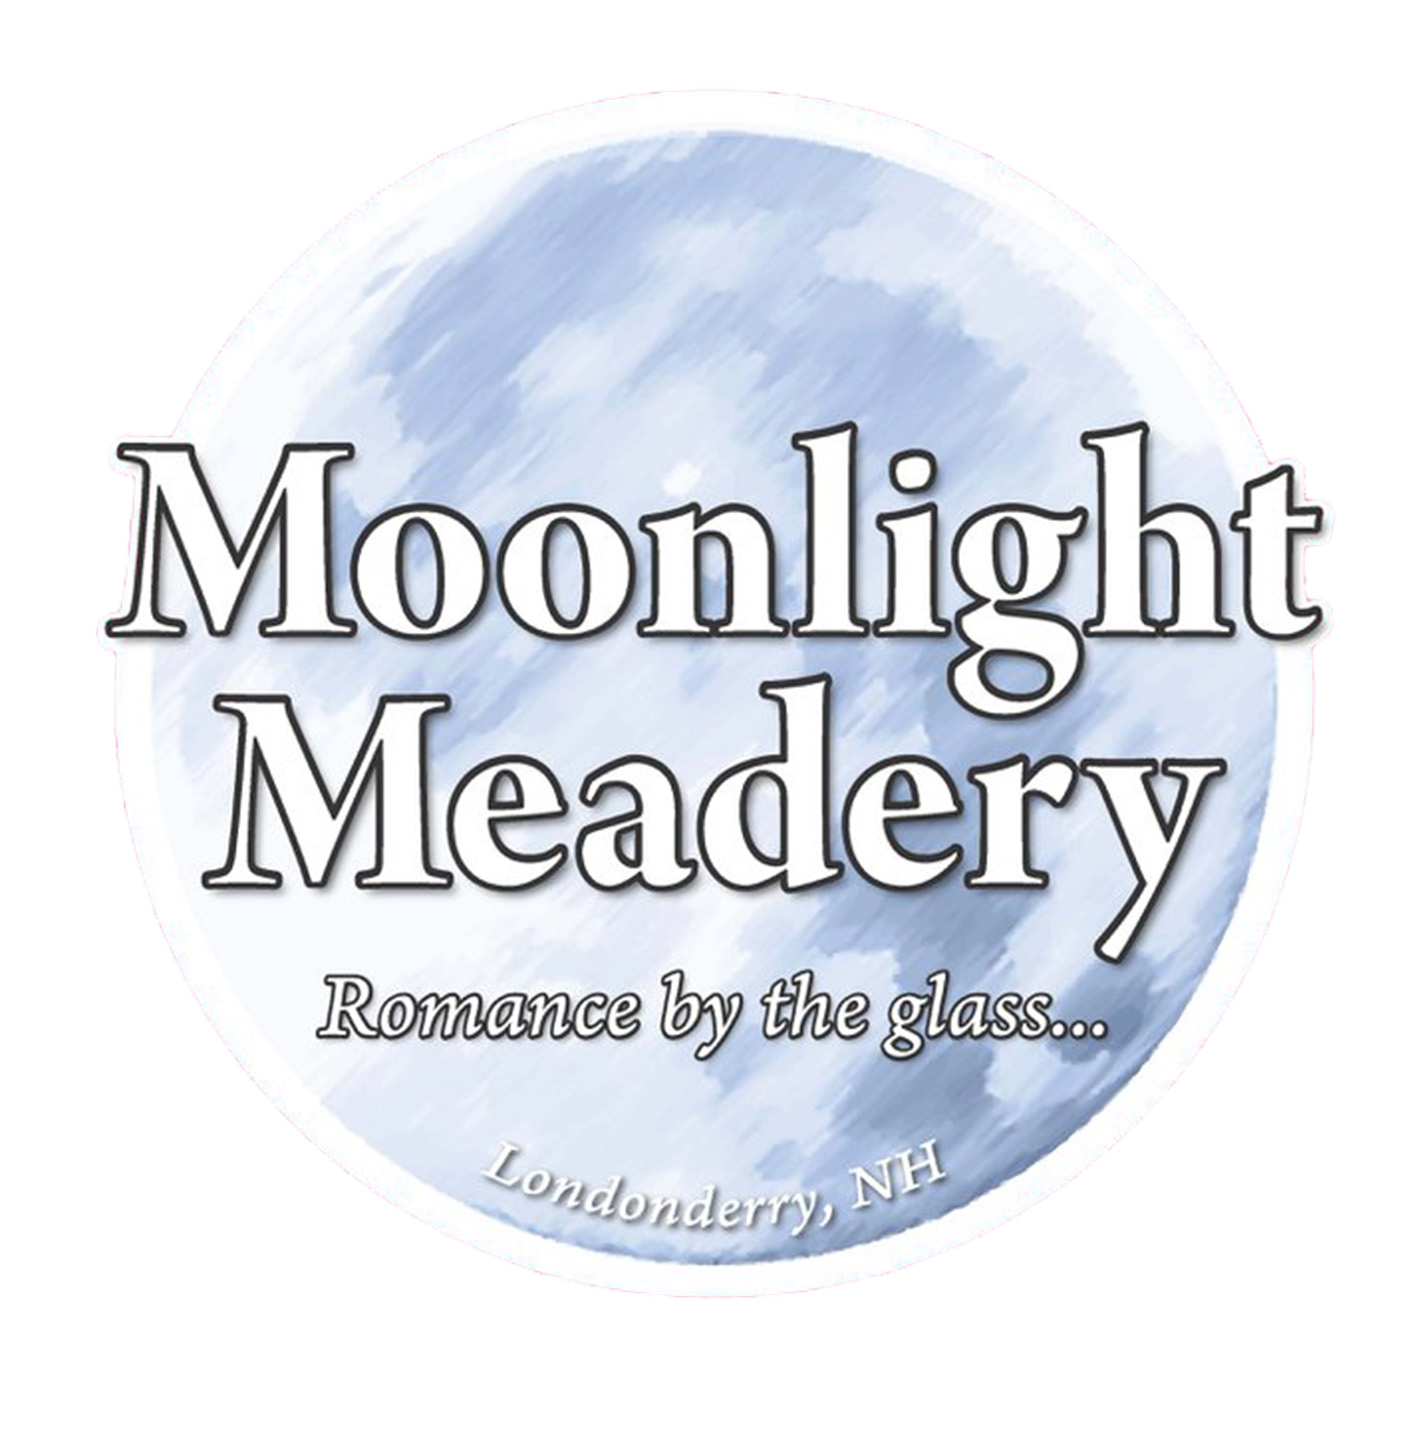 Moonlight Meadery Expands into Connecticut